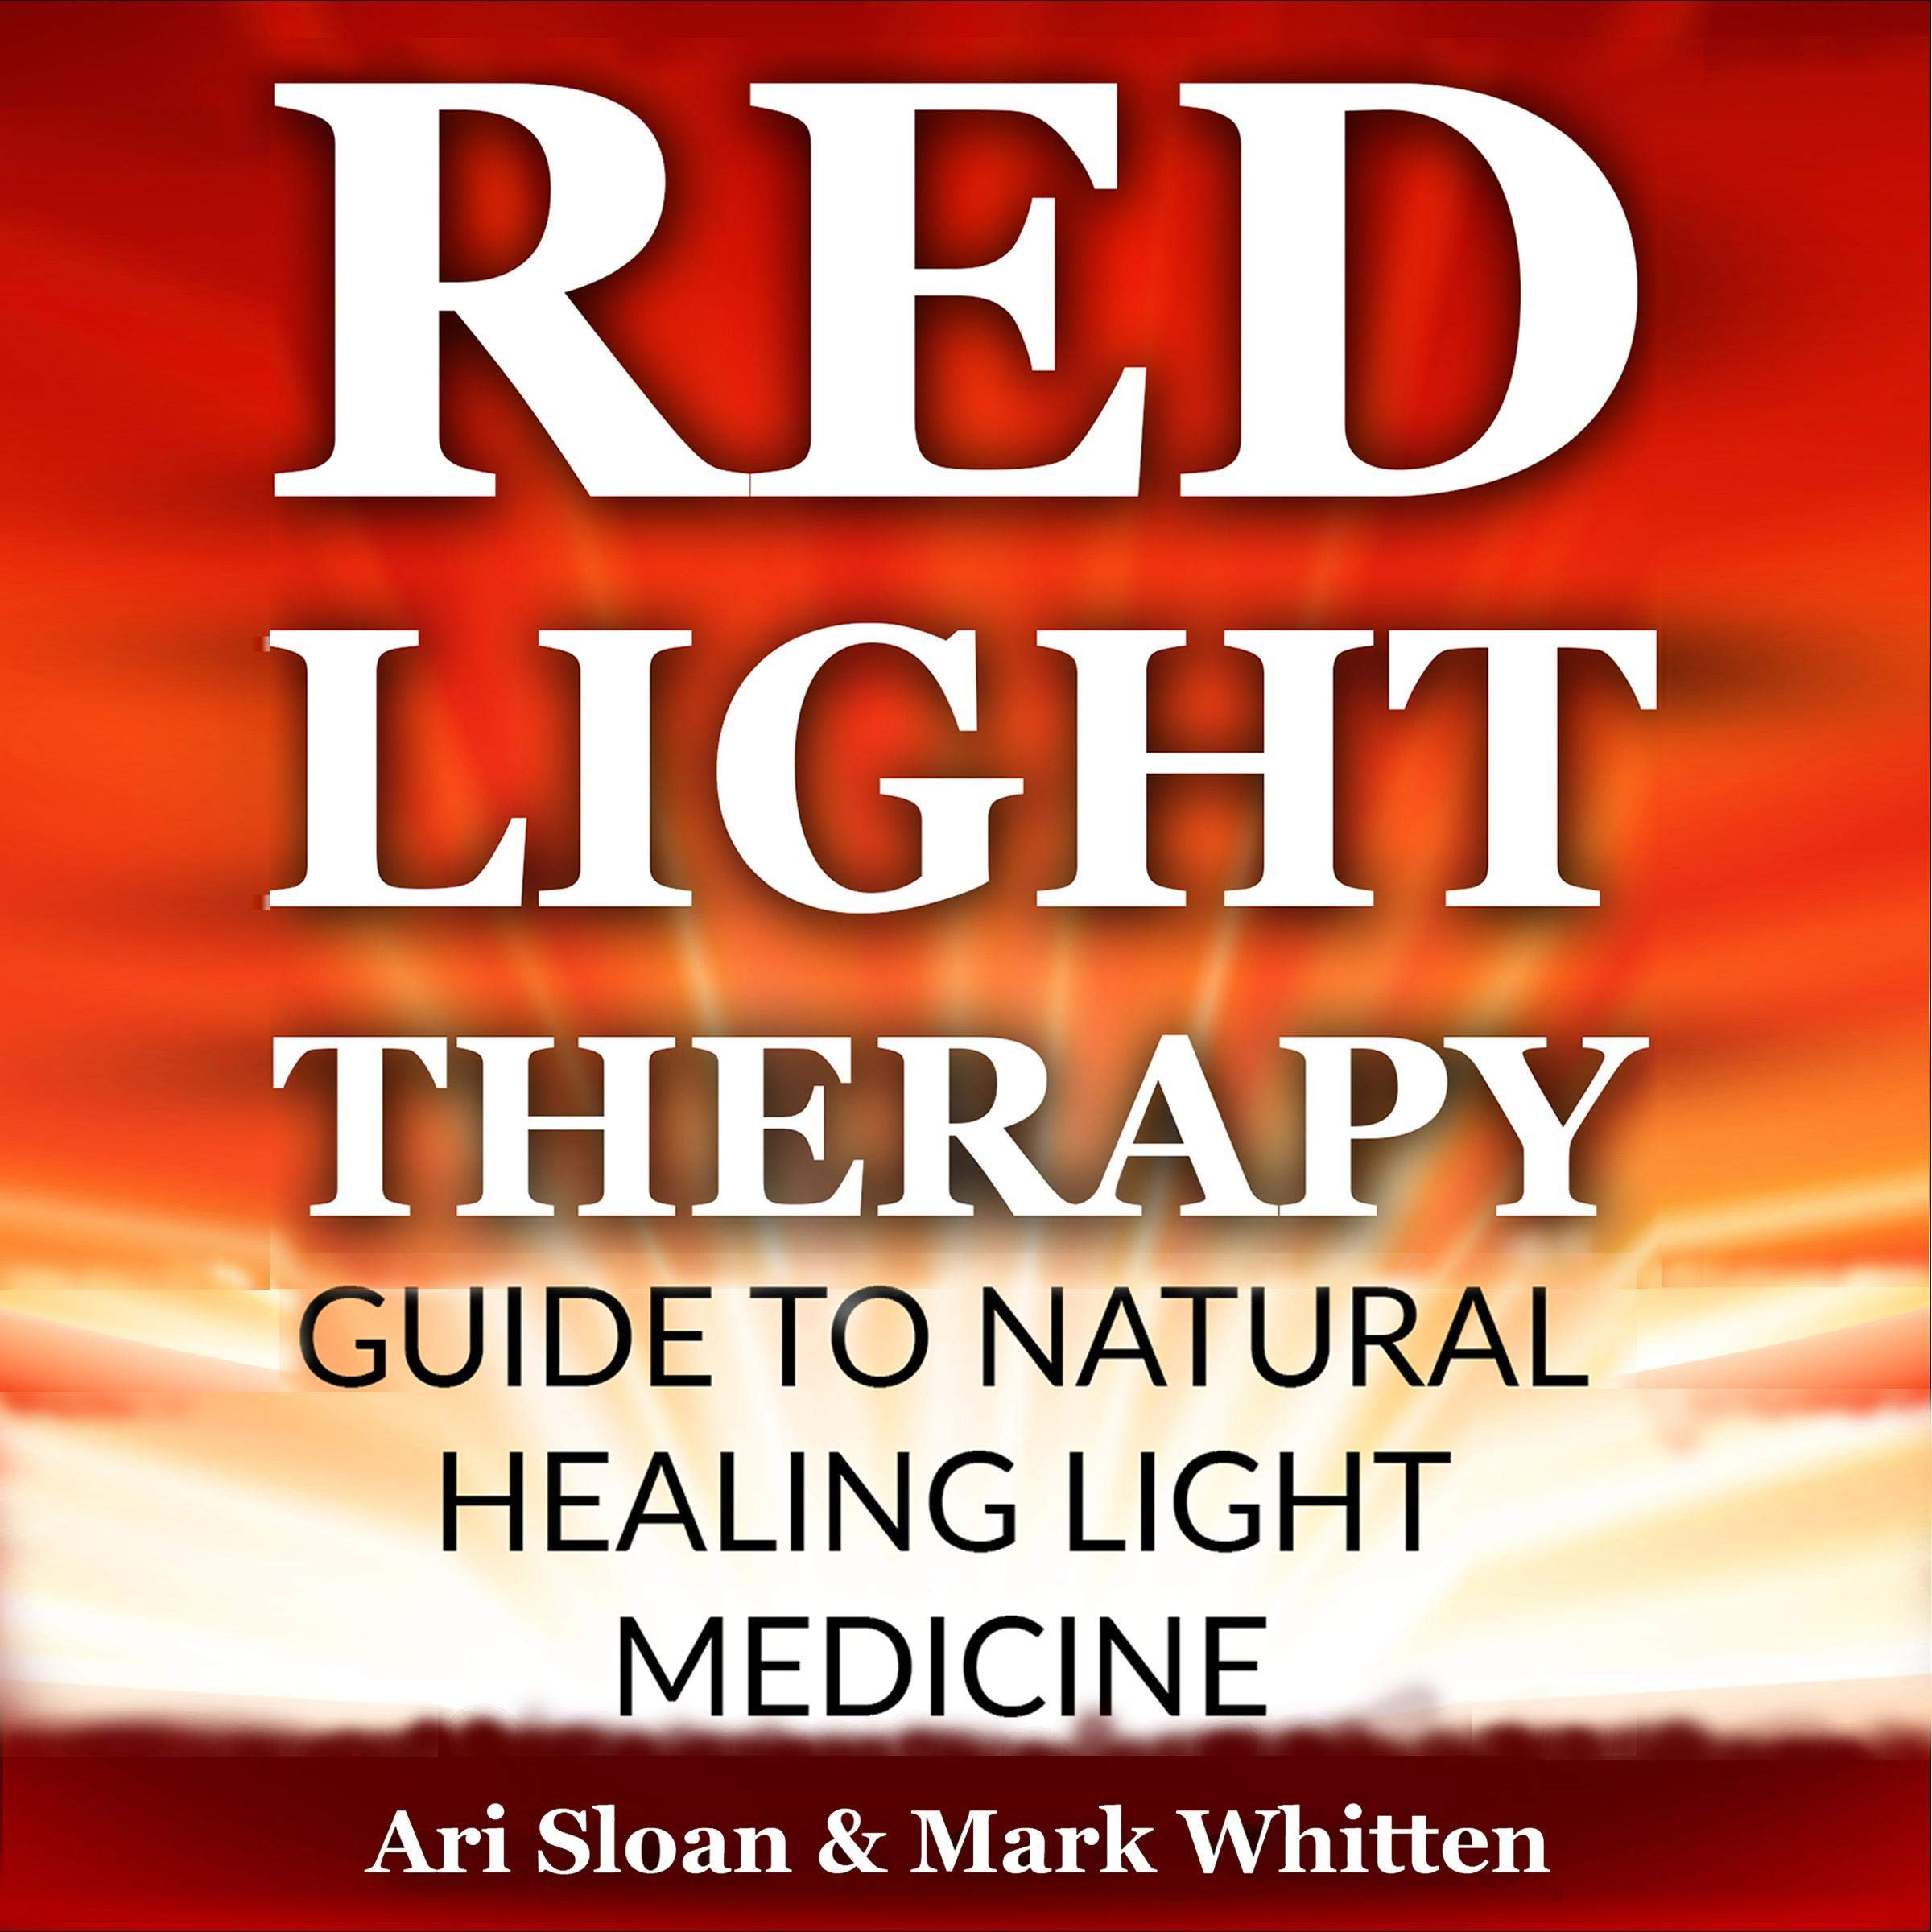 Red Light Therapy  Guide To Natural Healing Light Medicine